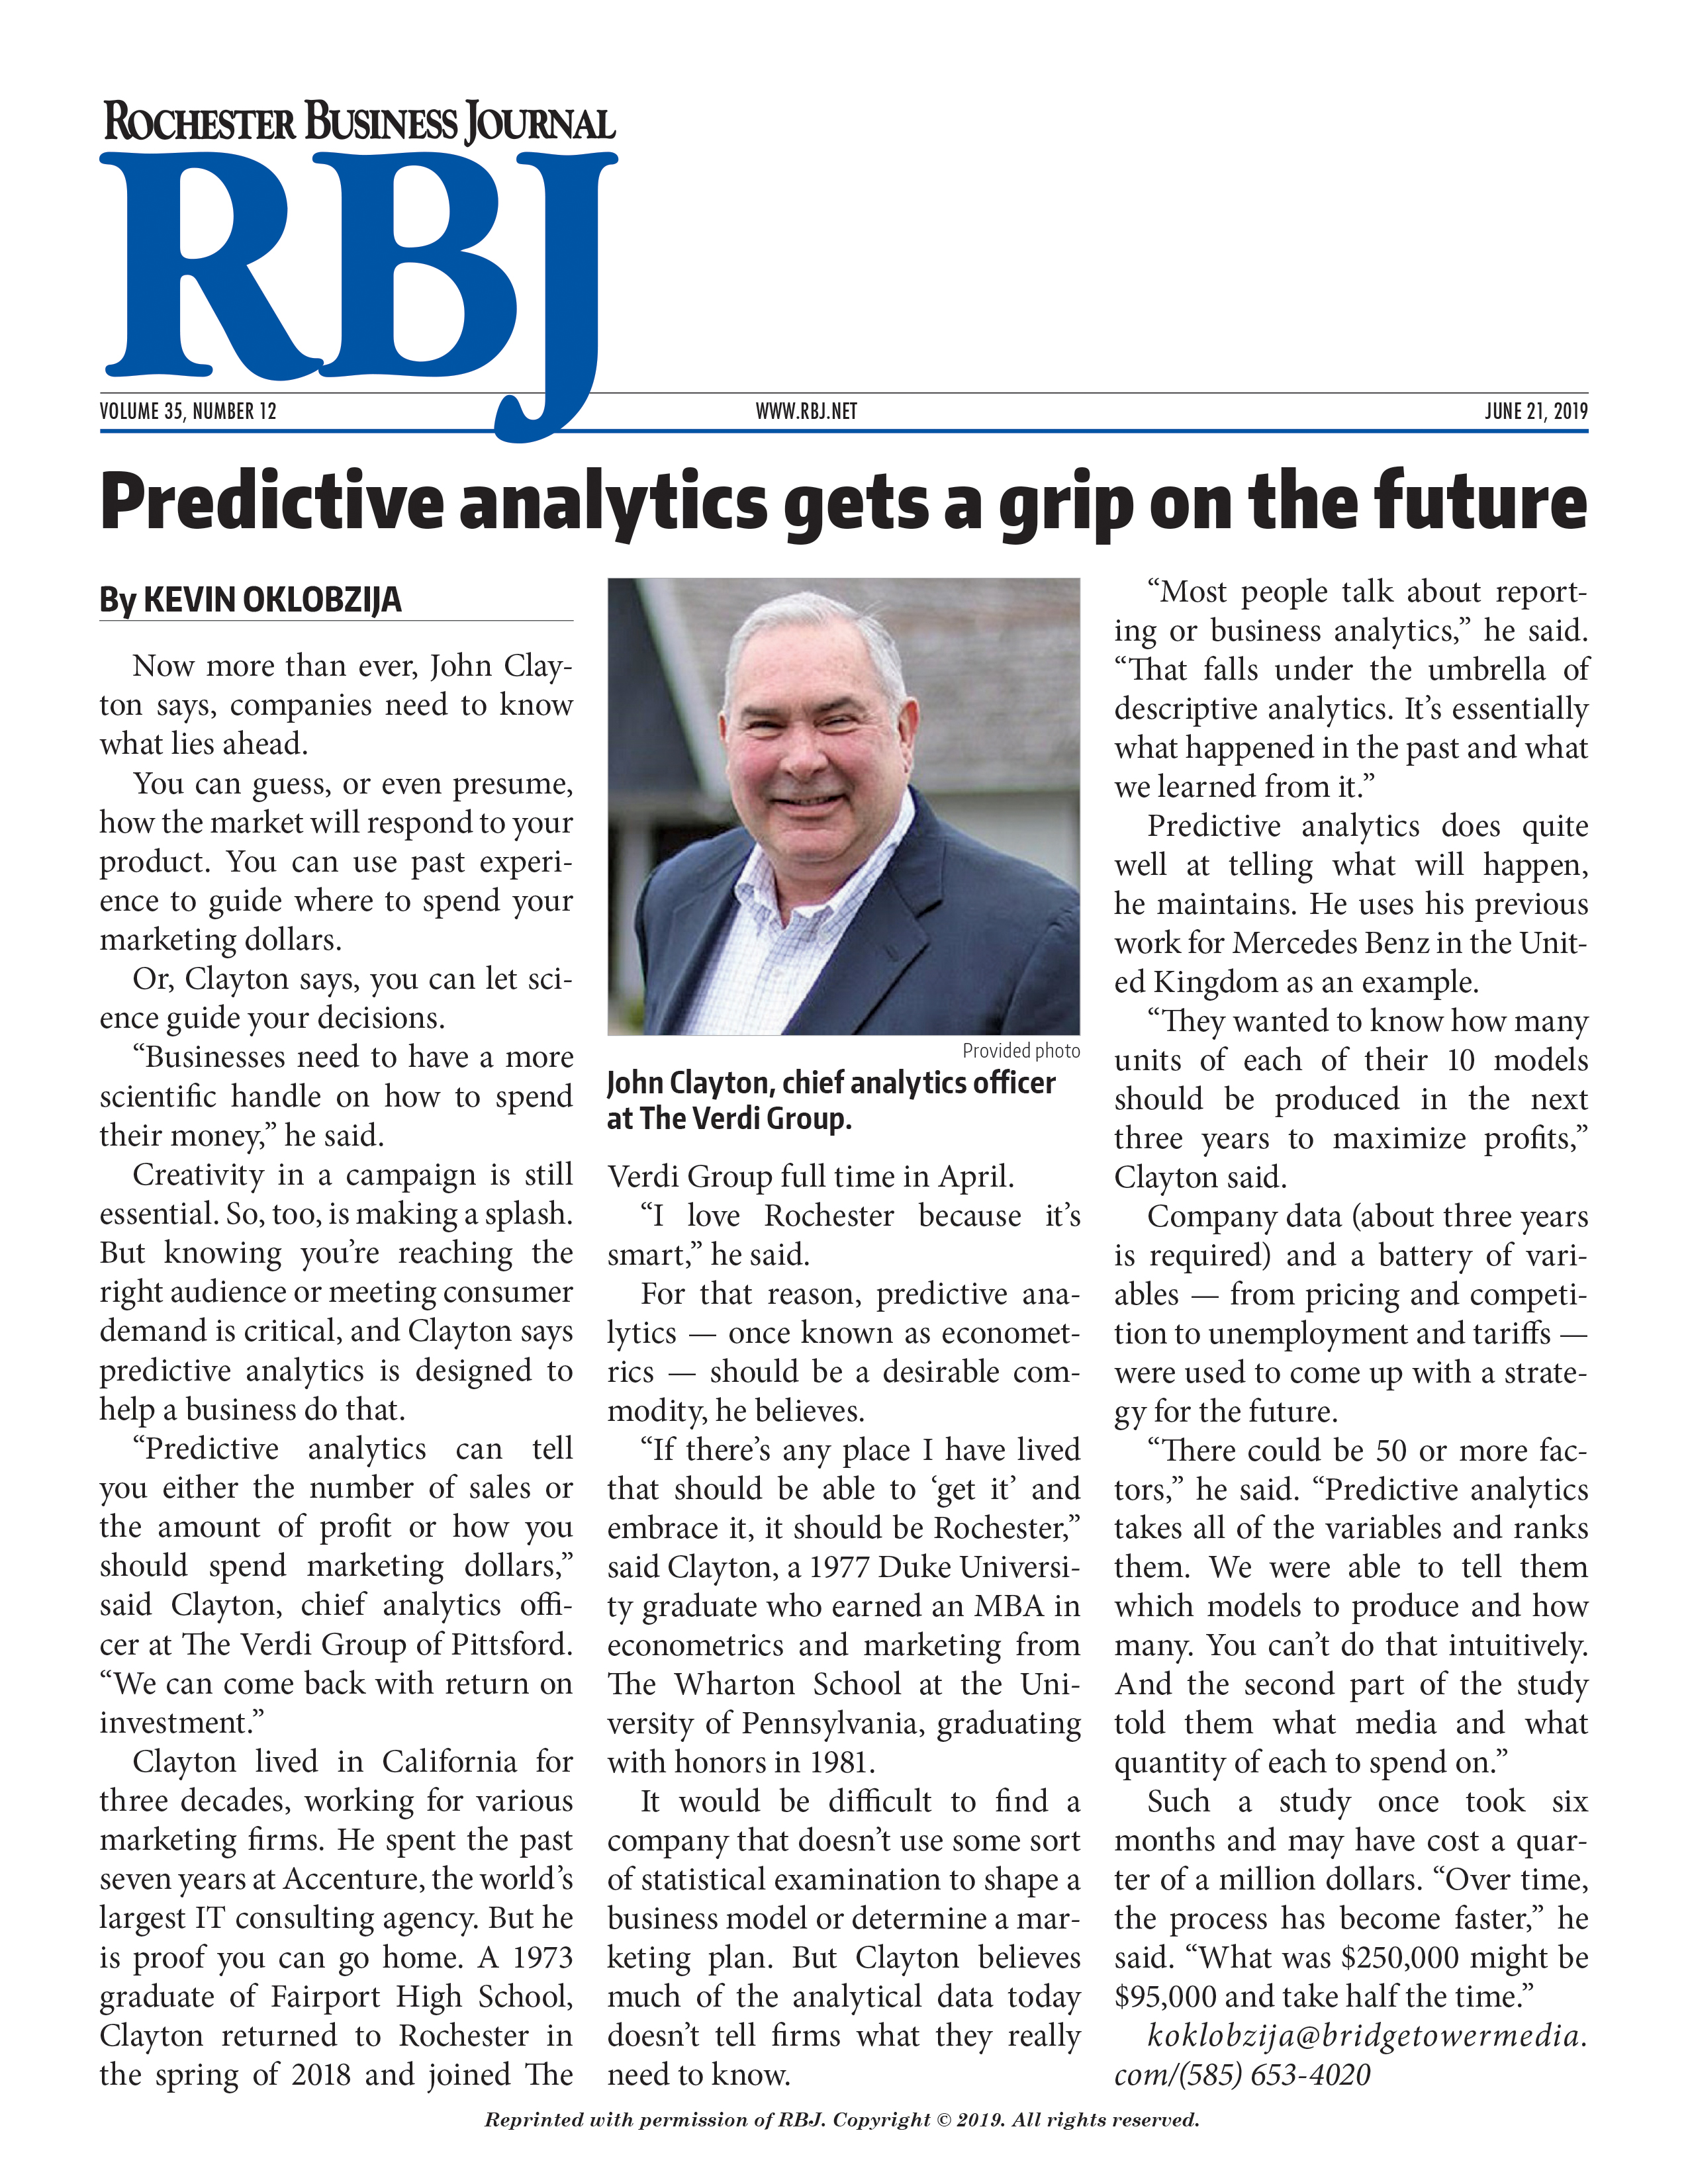 Clayton Feature in RBJ